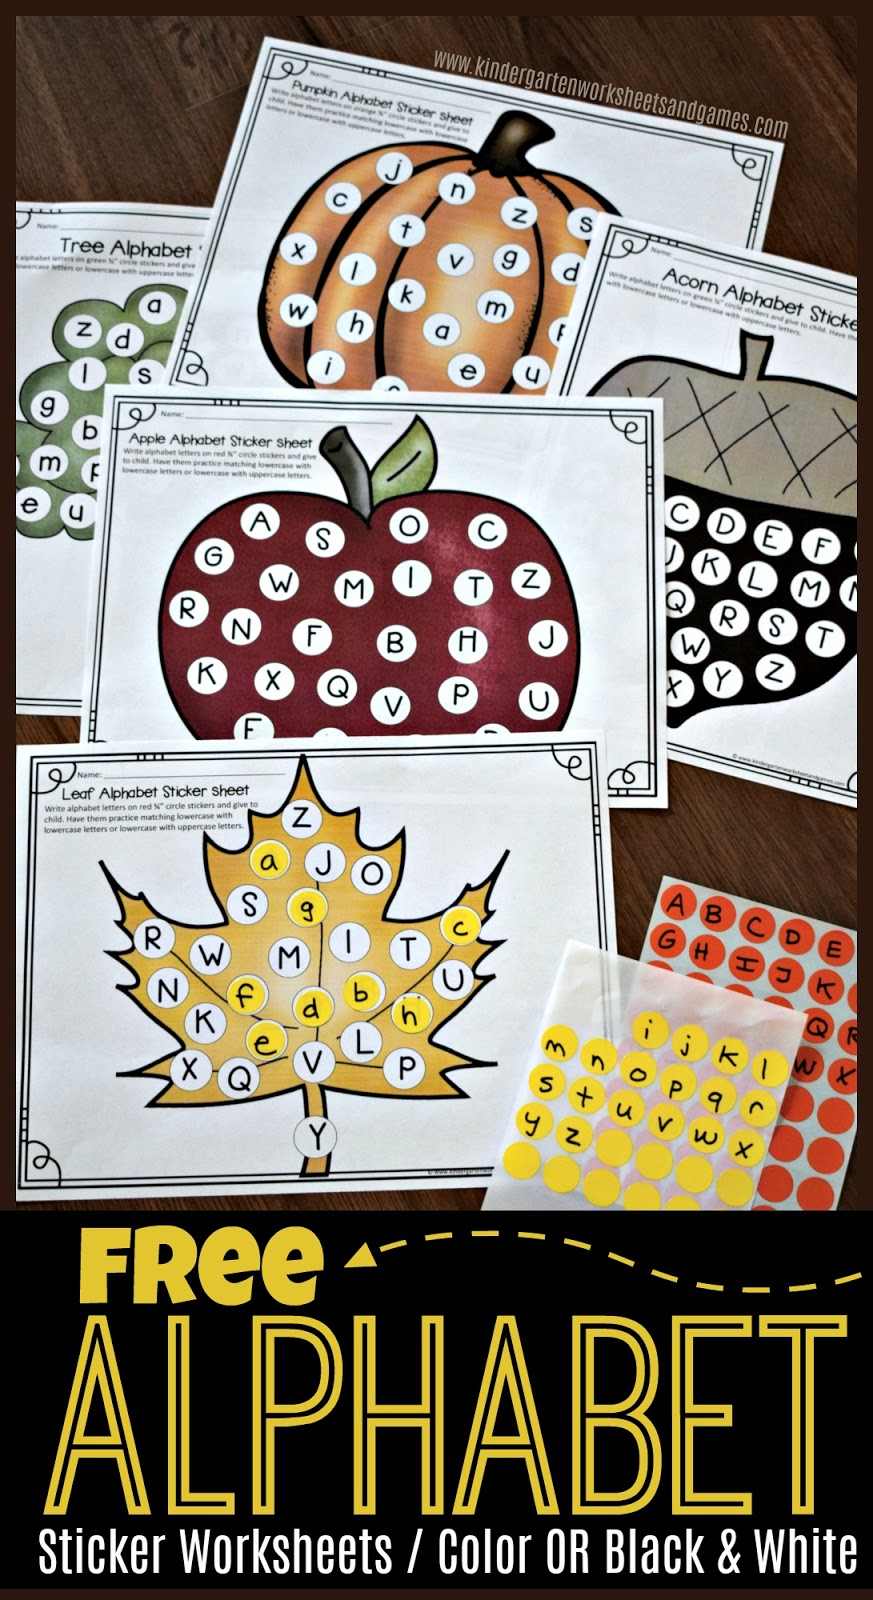 NEW! Free Alphabet Circle Sticker Worksheets